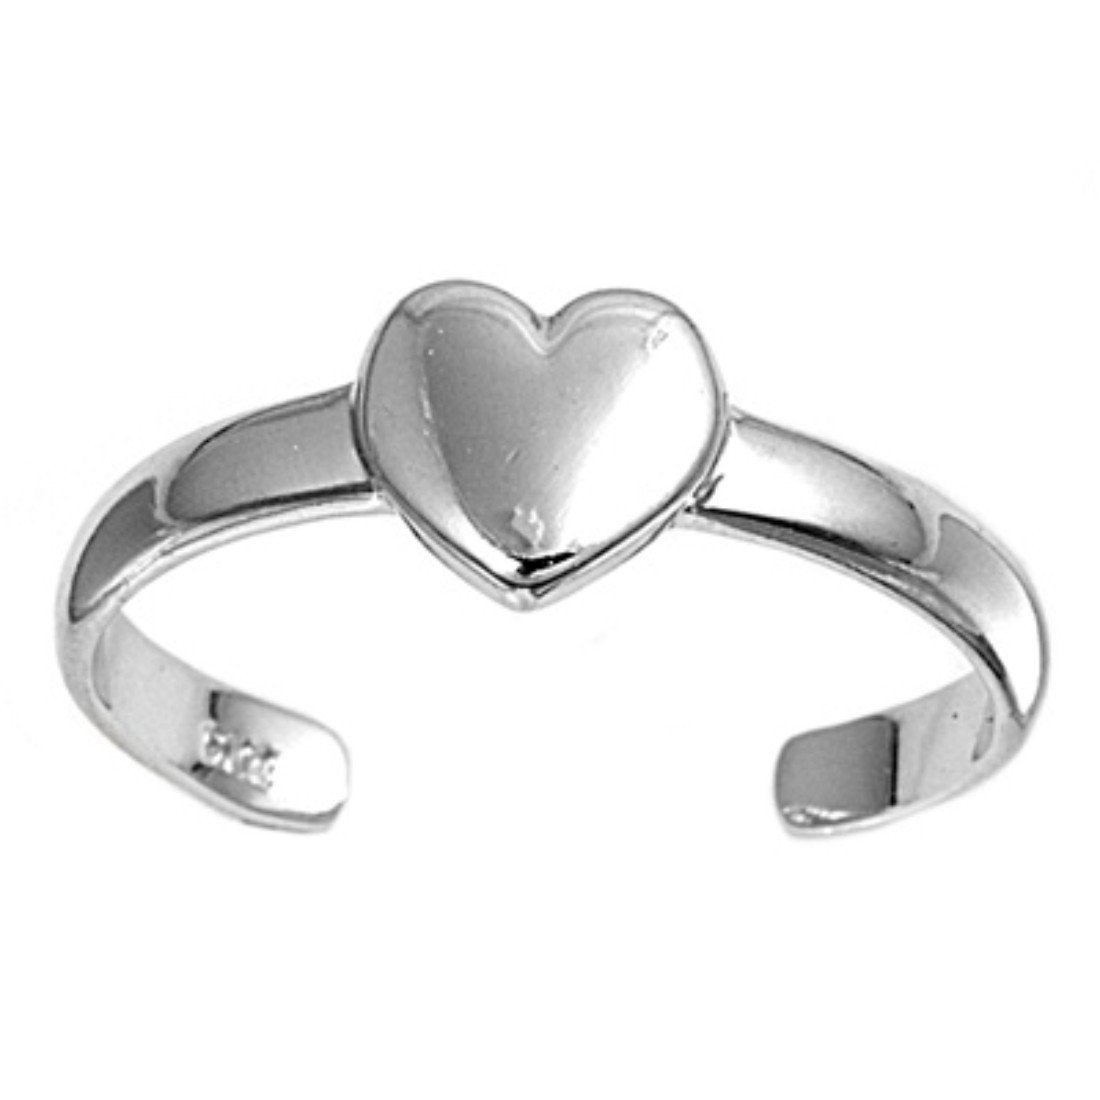 Heart Silver Toe Ring Adjustable Band 925 Sterling Silver (5mm)